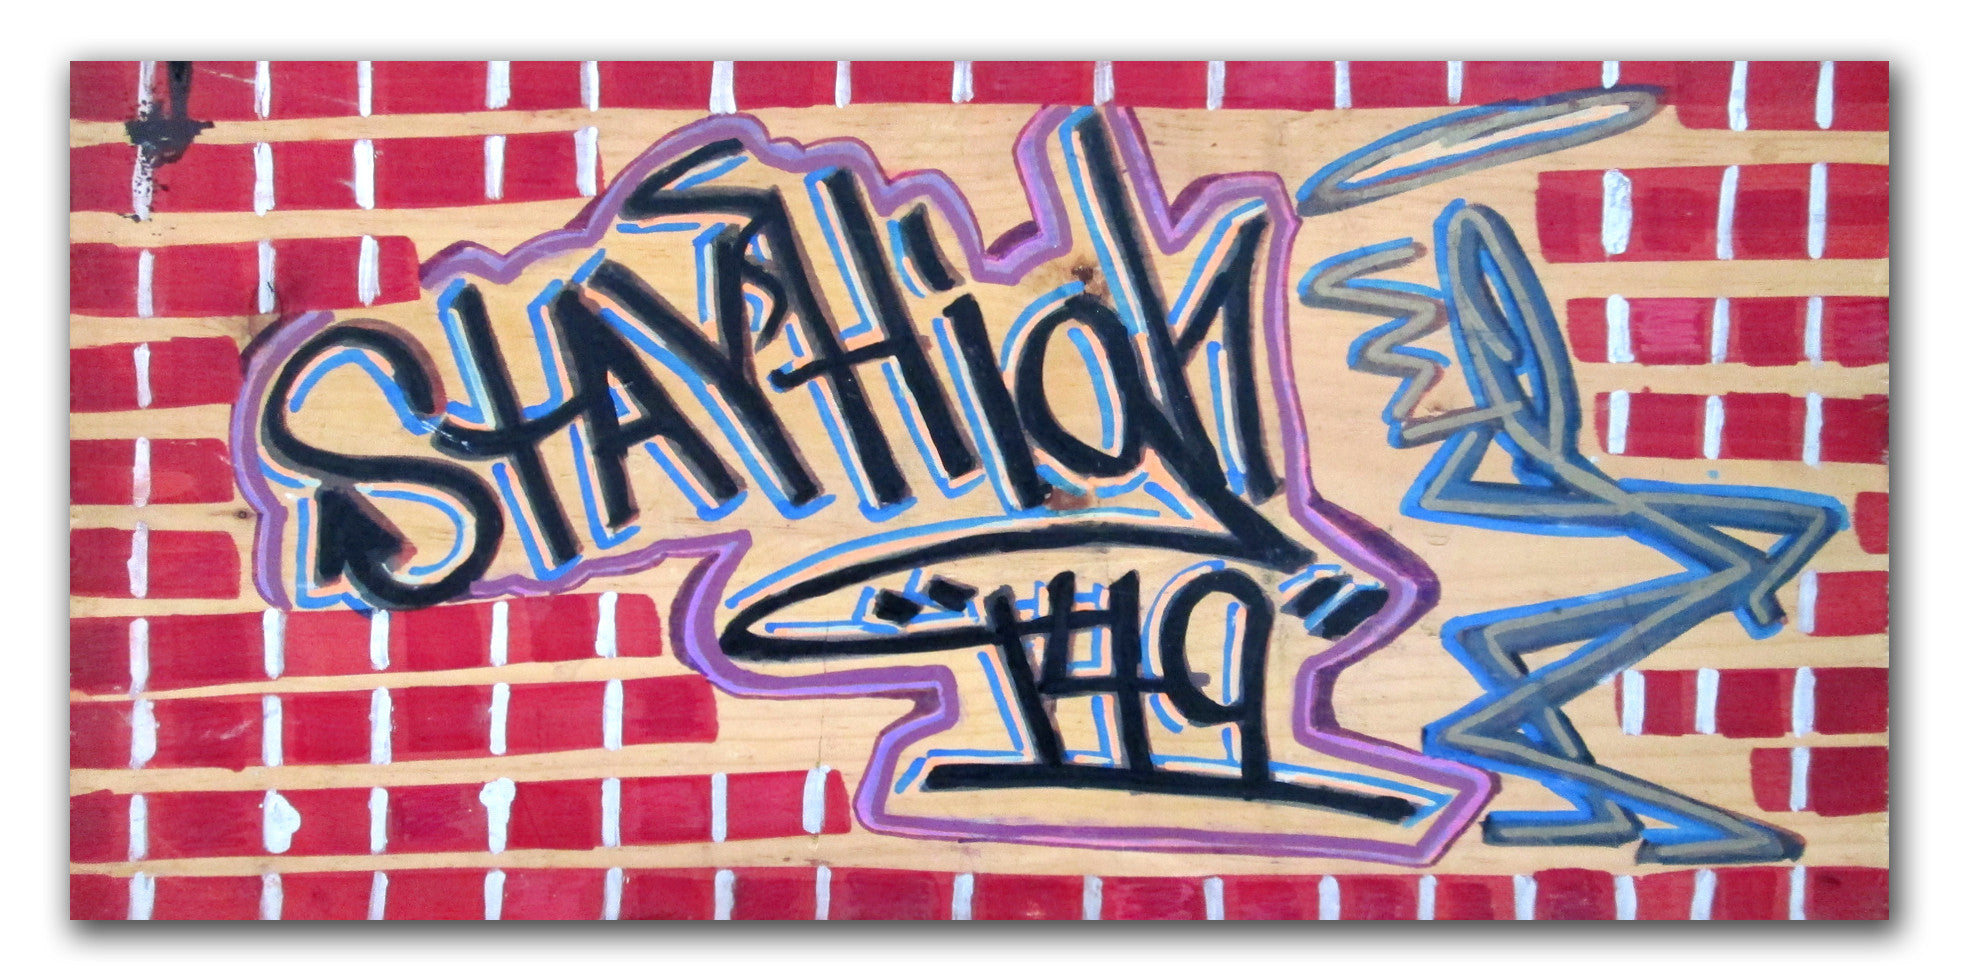 "STAYHIGH 149 ""Stayhigh149"" on wood"